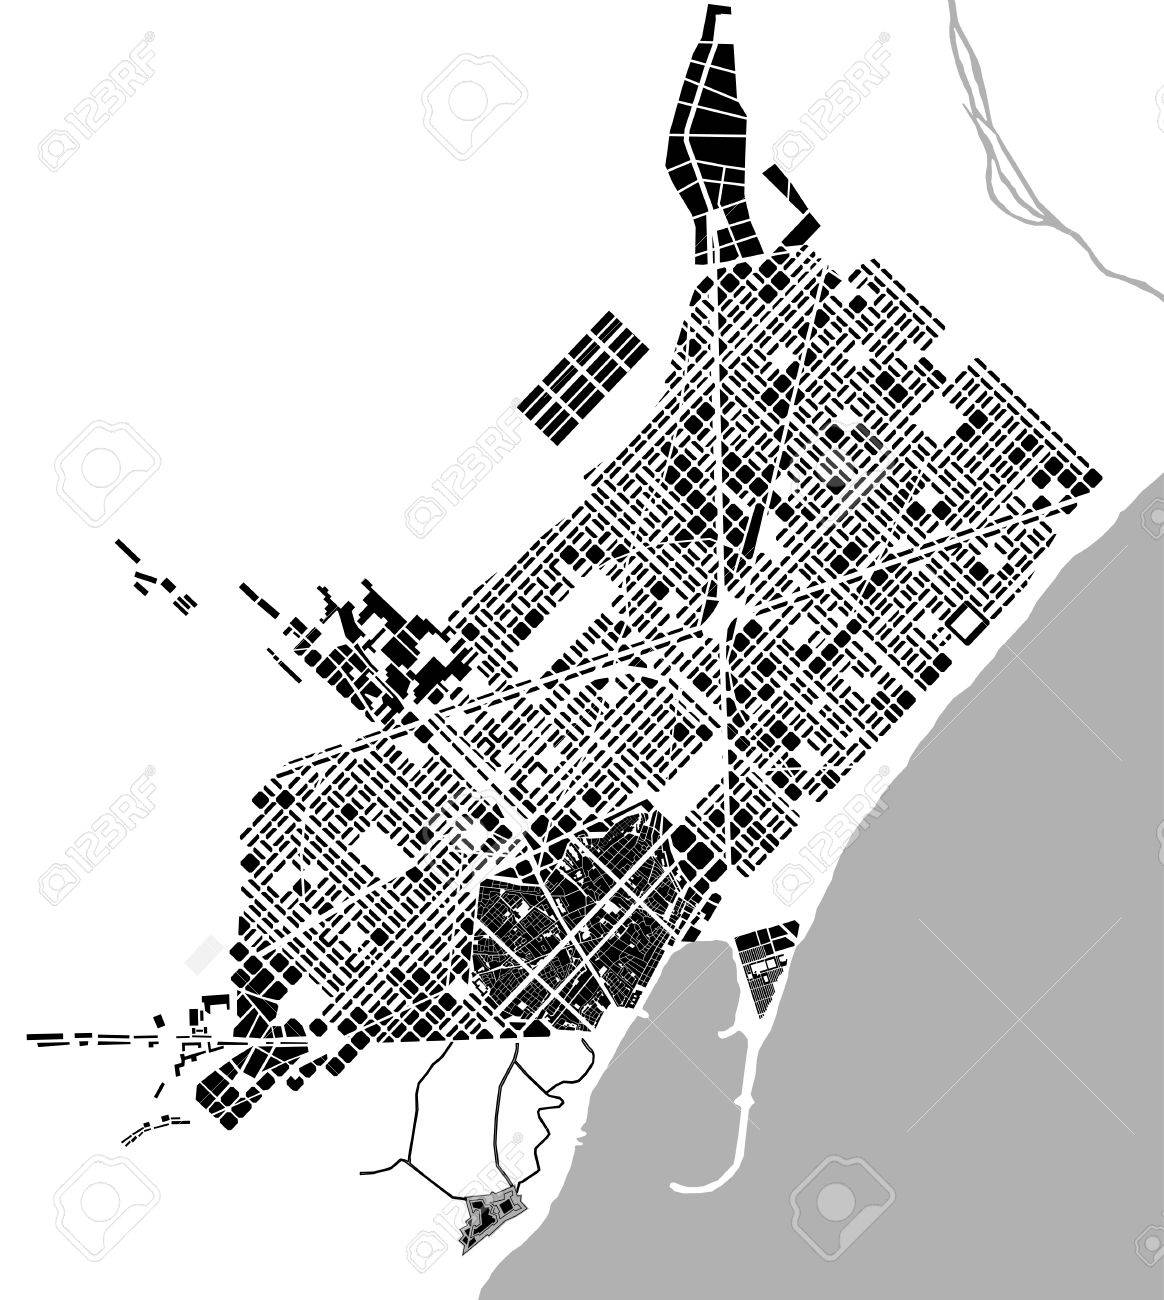 Barcelona In Spain Map.Historical Map Of The City Center Of Barcelona Spain Royalty Free